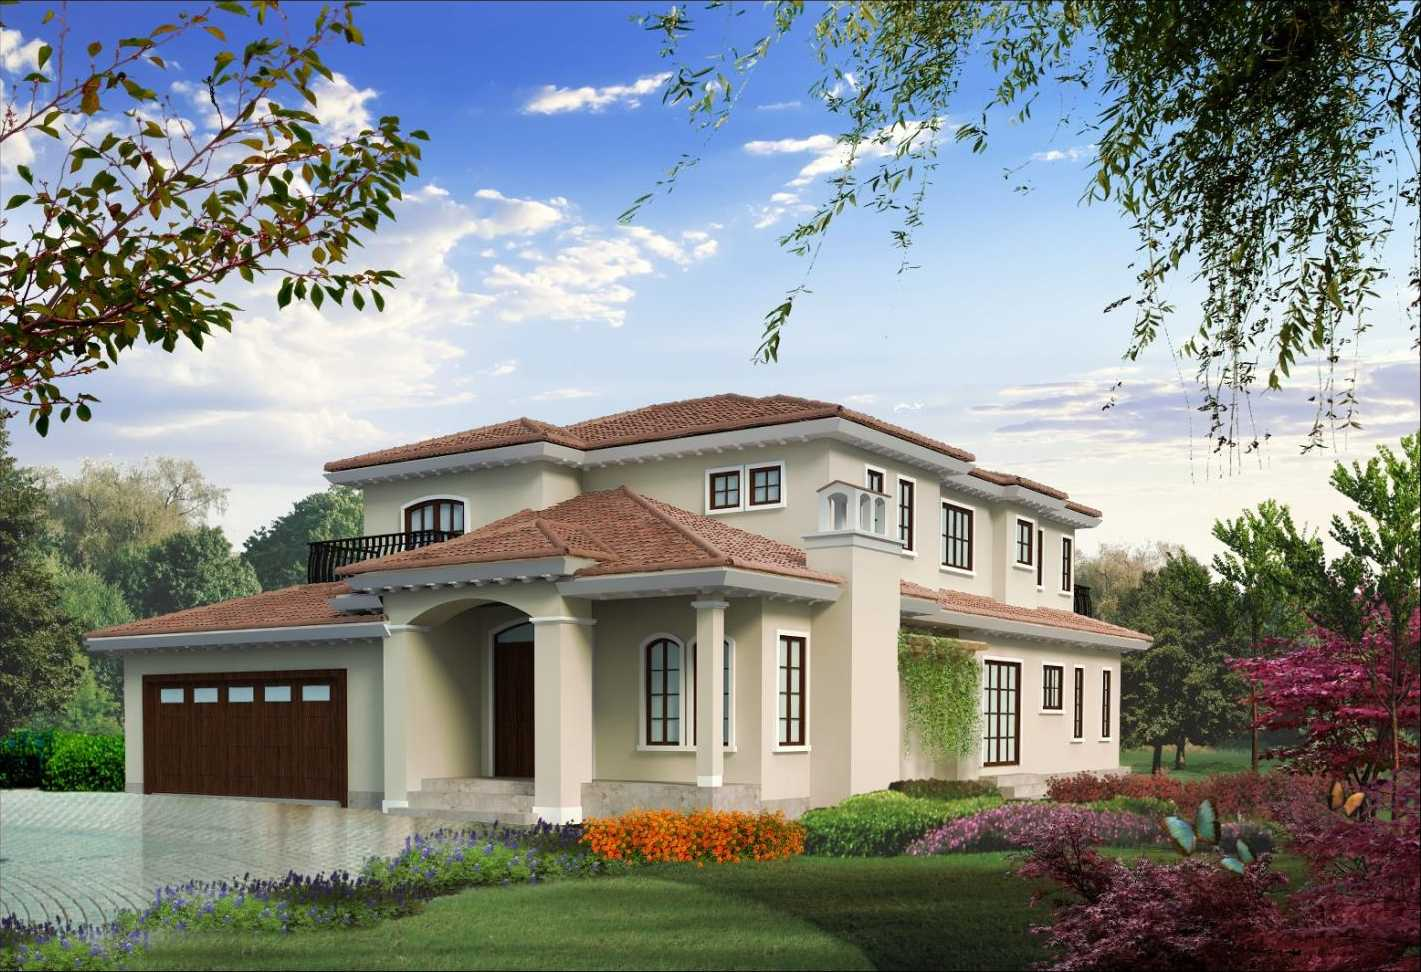 $2,700,000 - 5Br/5Ba -  for Sale in Los Altos